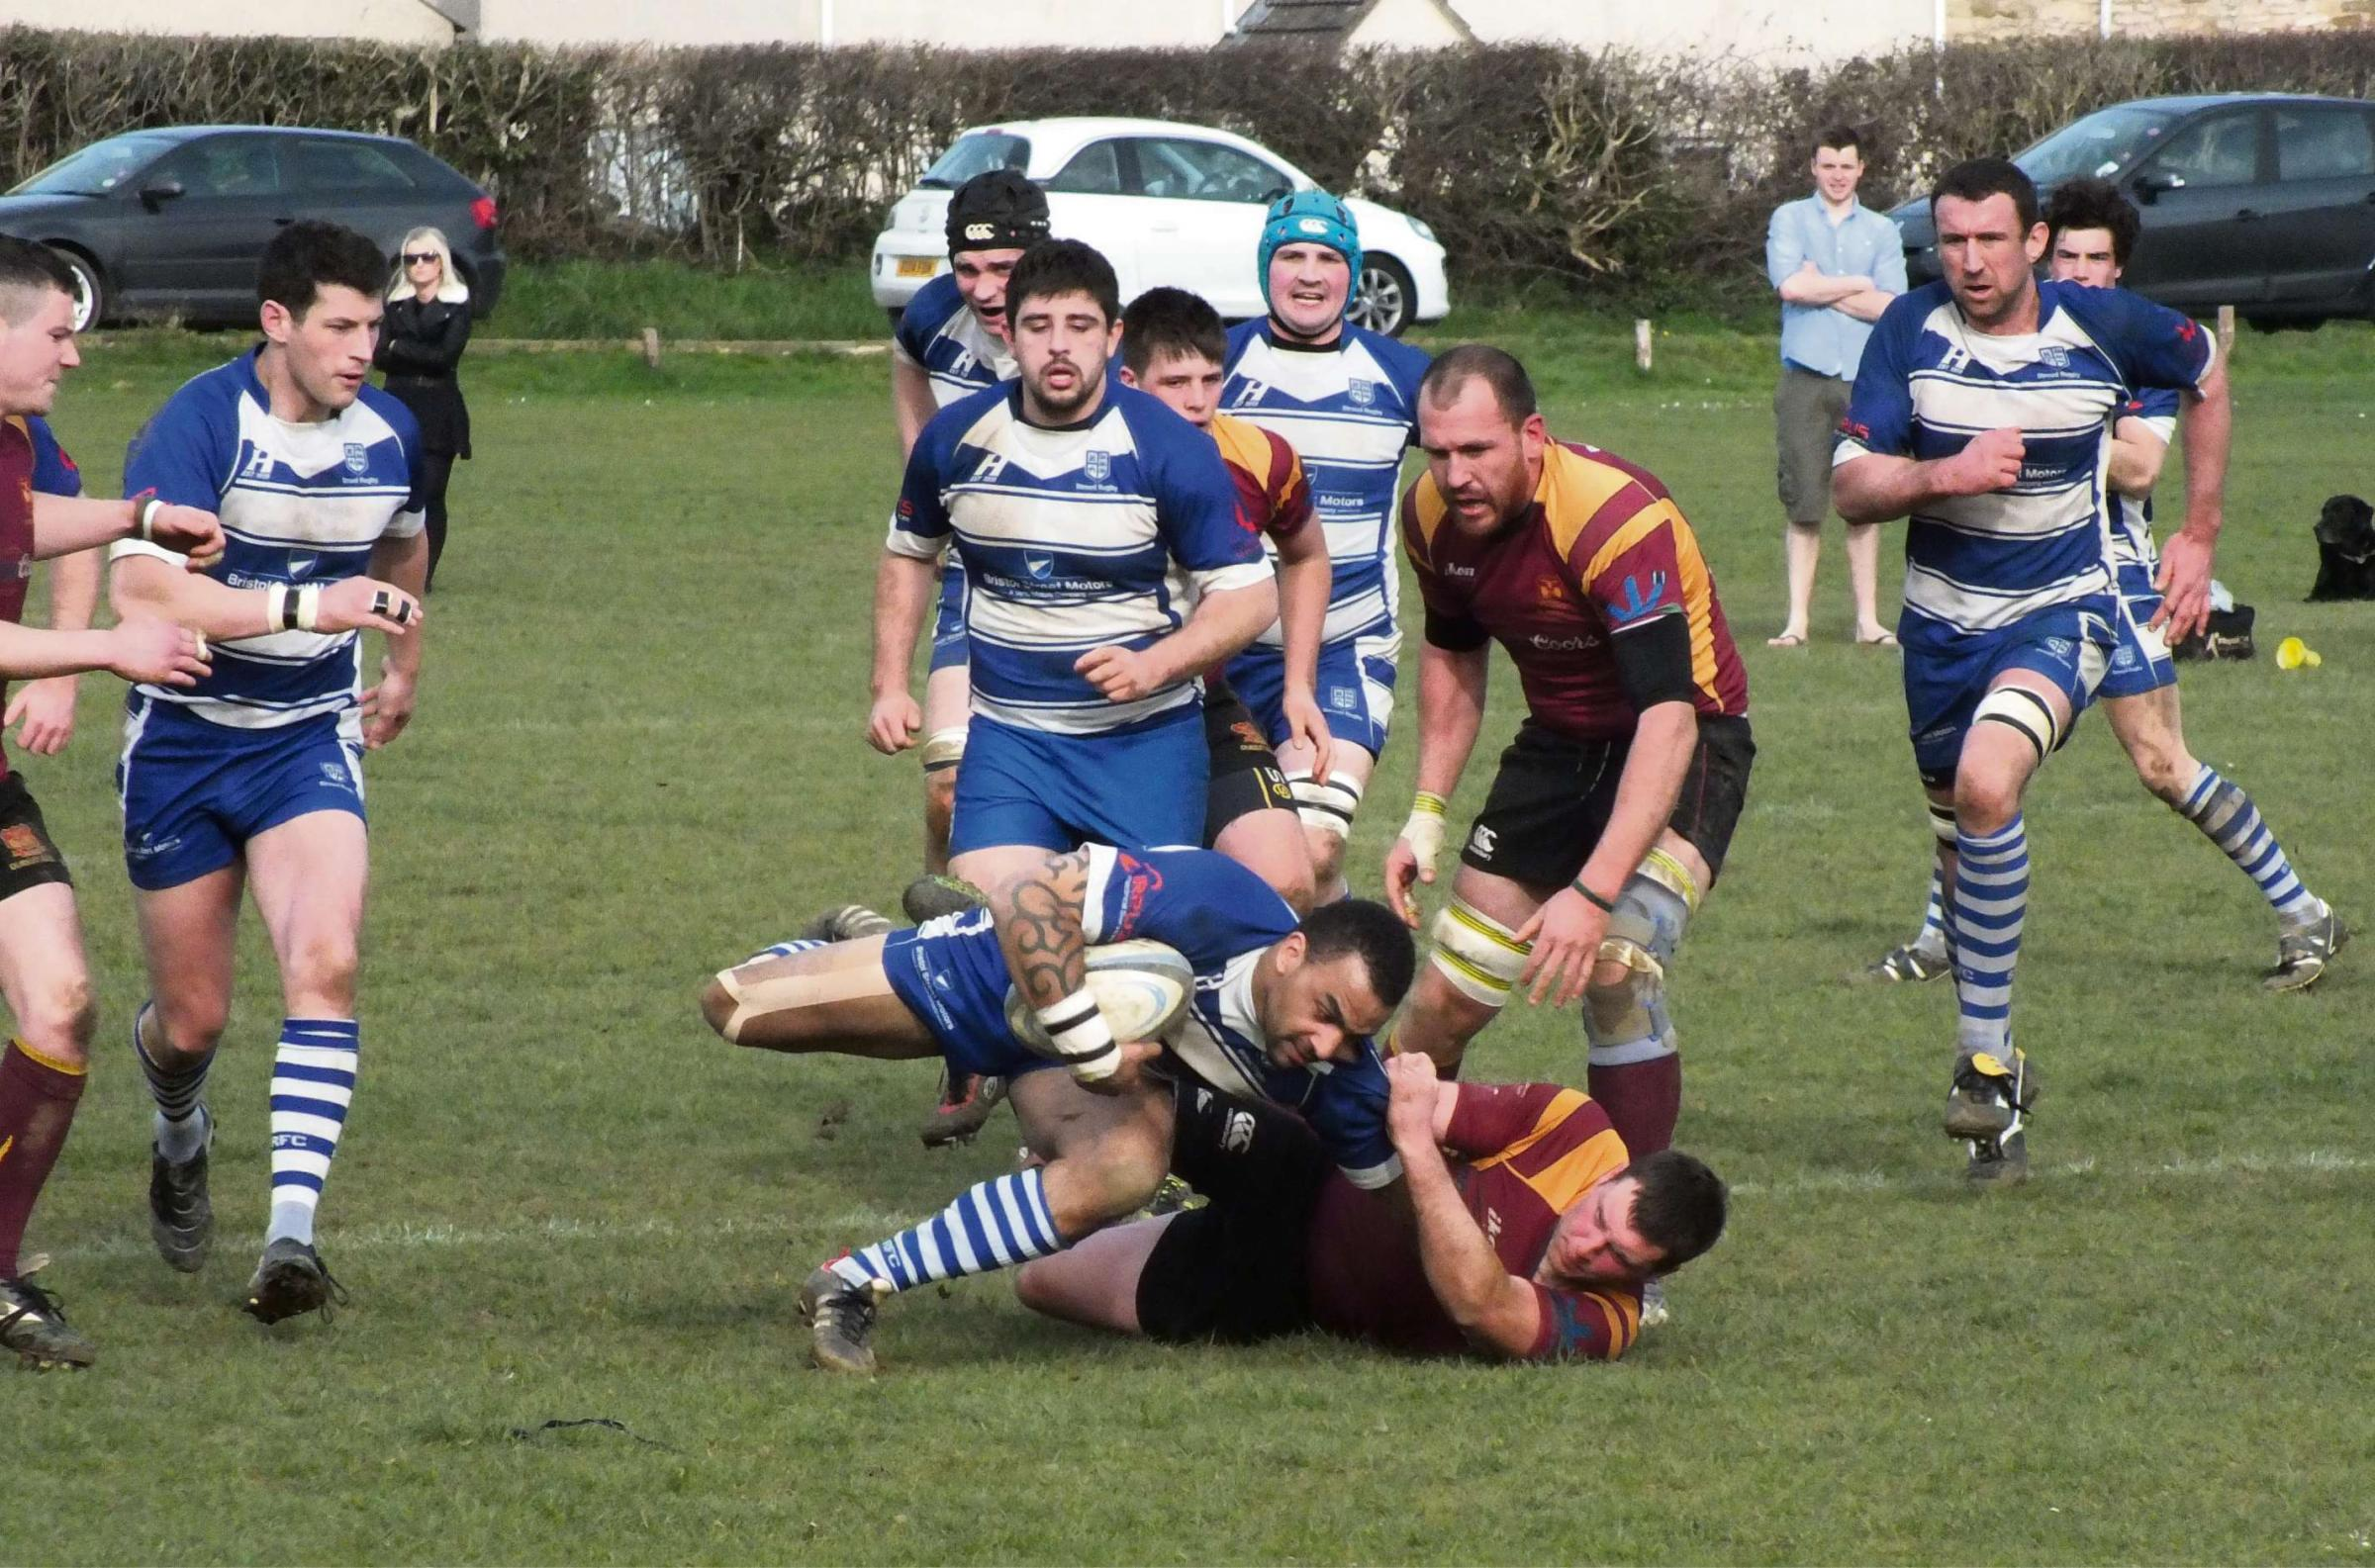 Dursley's Simon Camm brings down Dan Gordan of Stroud with captain Scott Udal standing over them. Picture by Trevor Hodges.